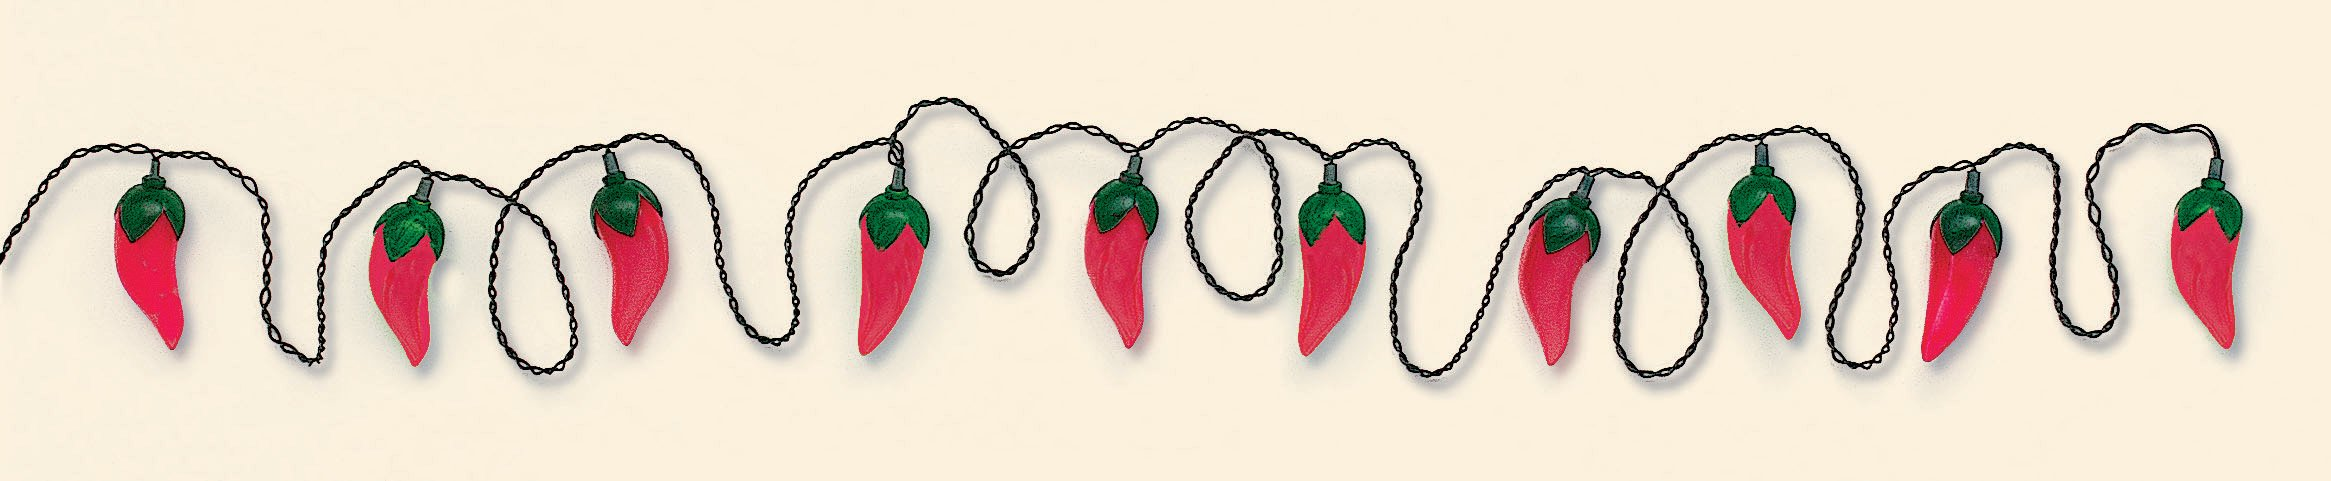 14' Chili Pepper Electric Light Set (10 lights)